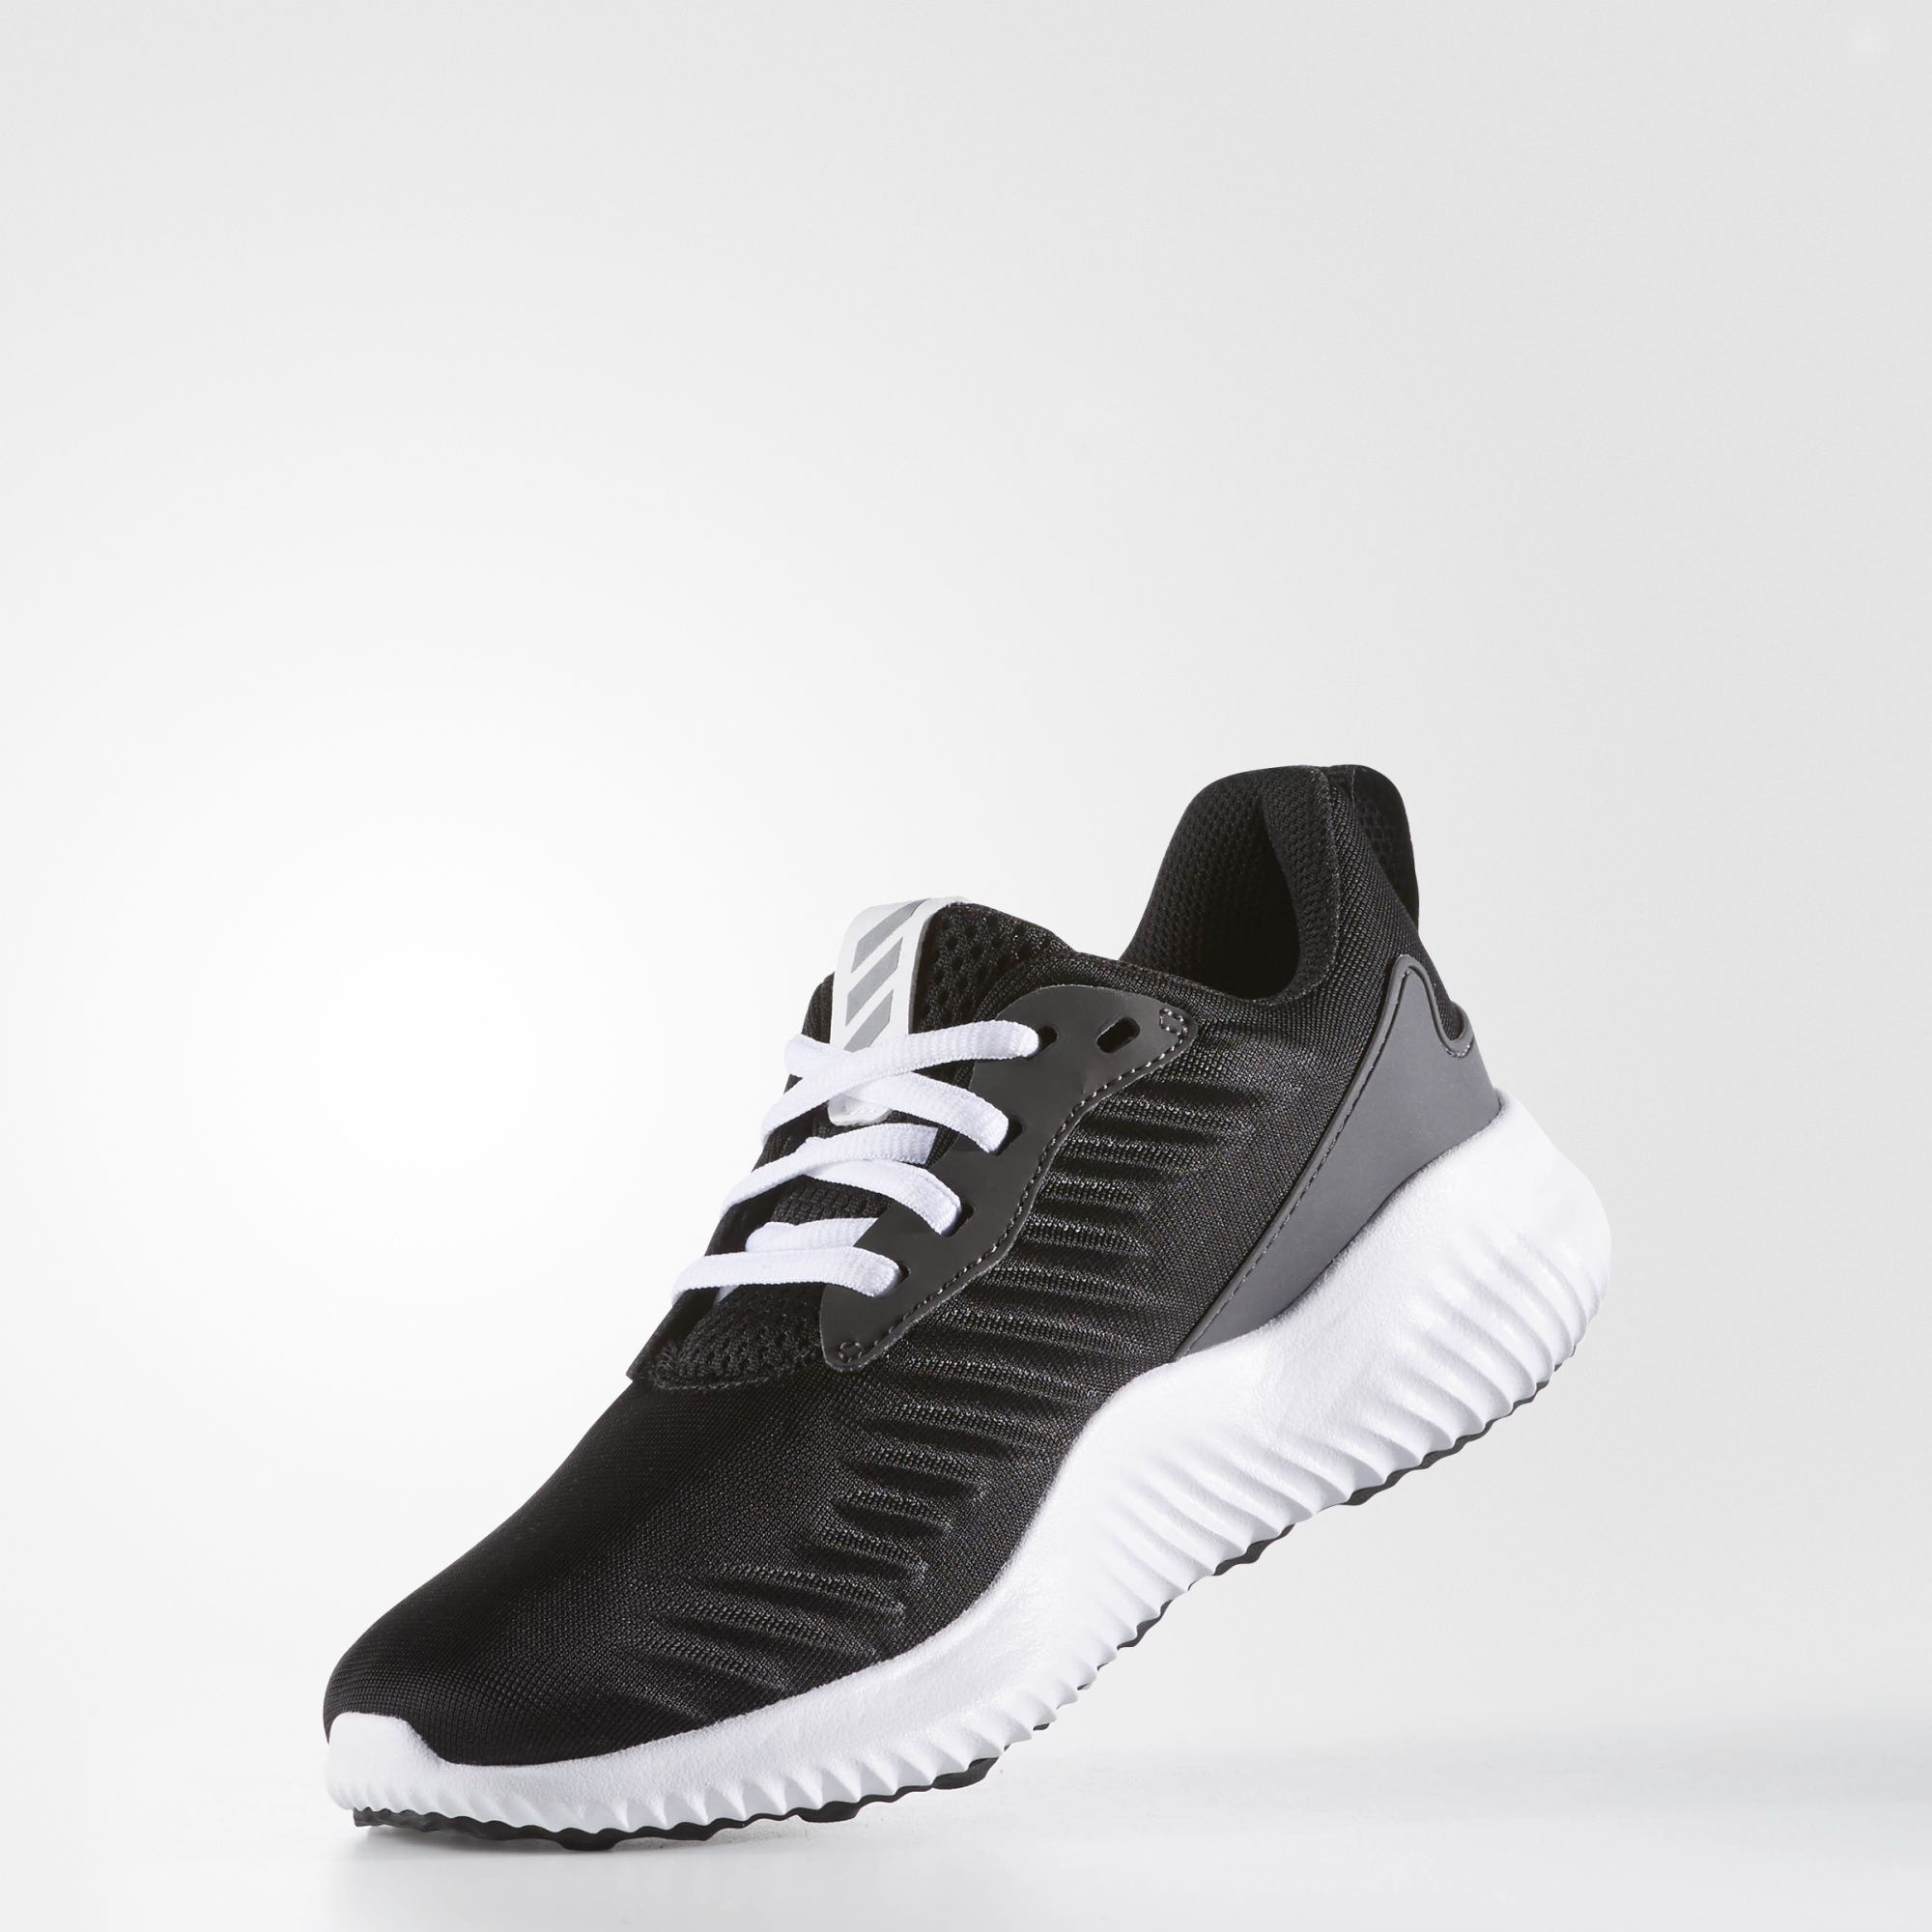 super popular 2f0c8 c9f36 adidas - Youth Alphabounce RC Shoes